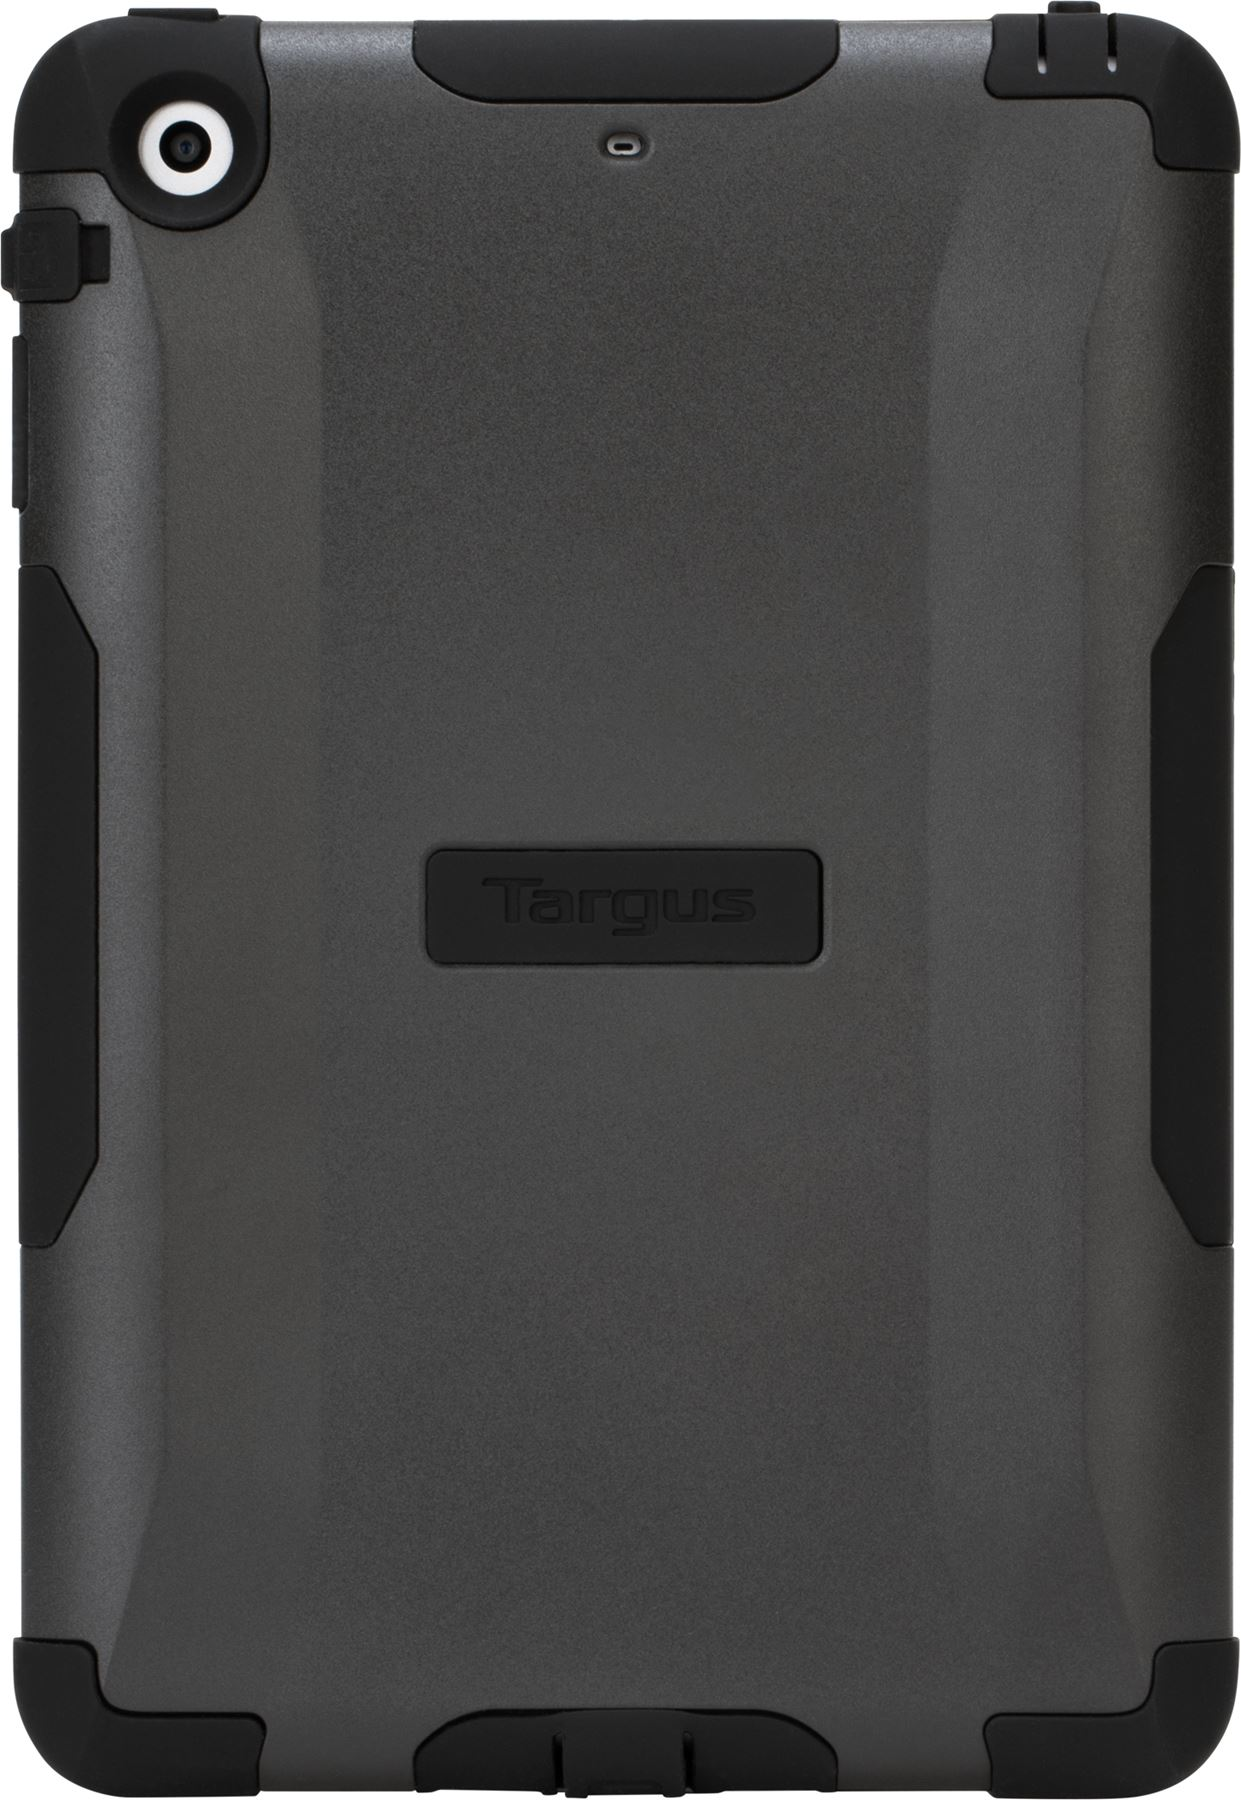 Safeport Rugged Case For Ipad Mini Thd047us Black Tablet Cases Targus